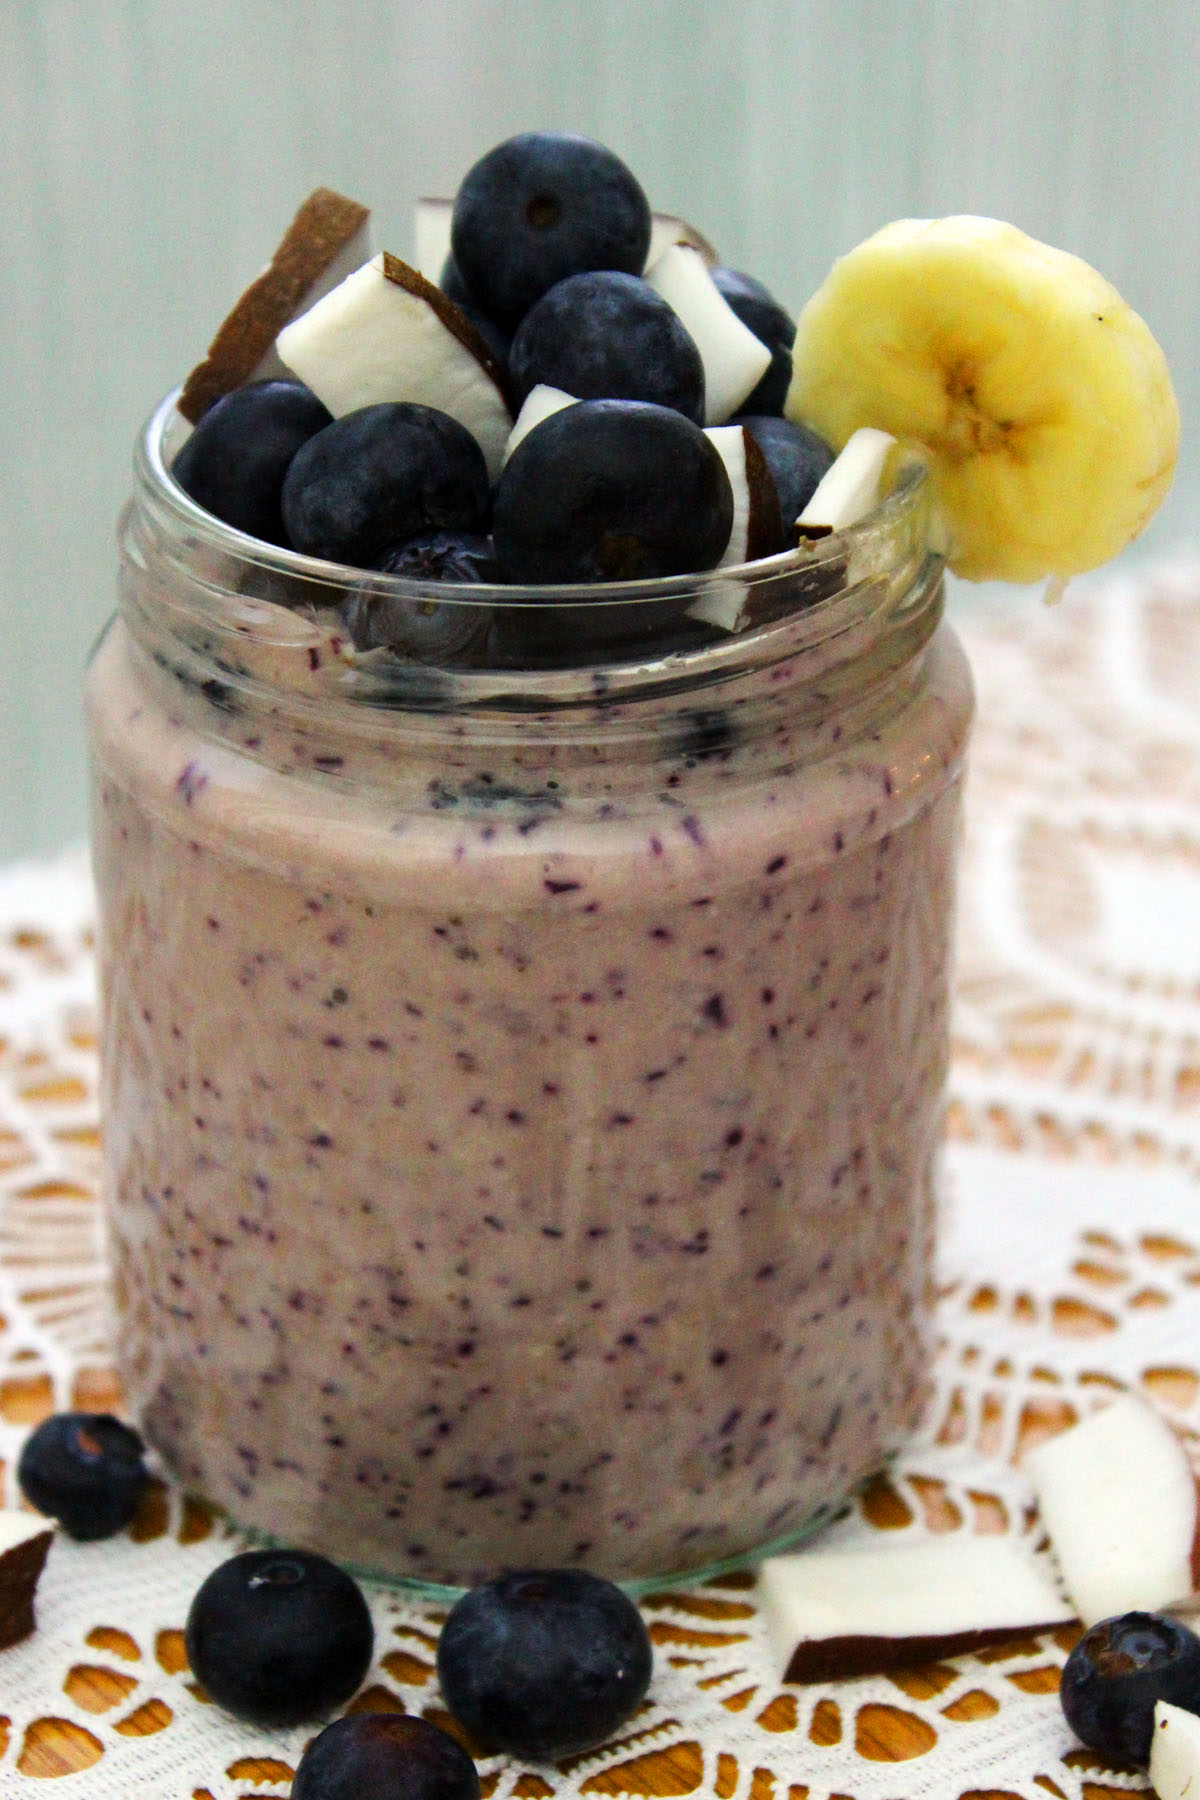 Blueberry Banana and Coconut Smoothie